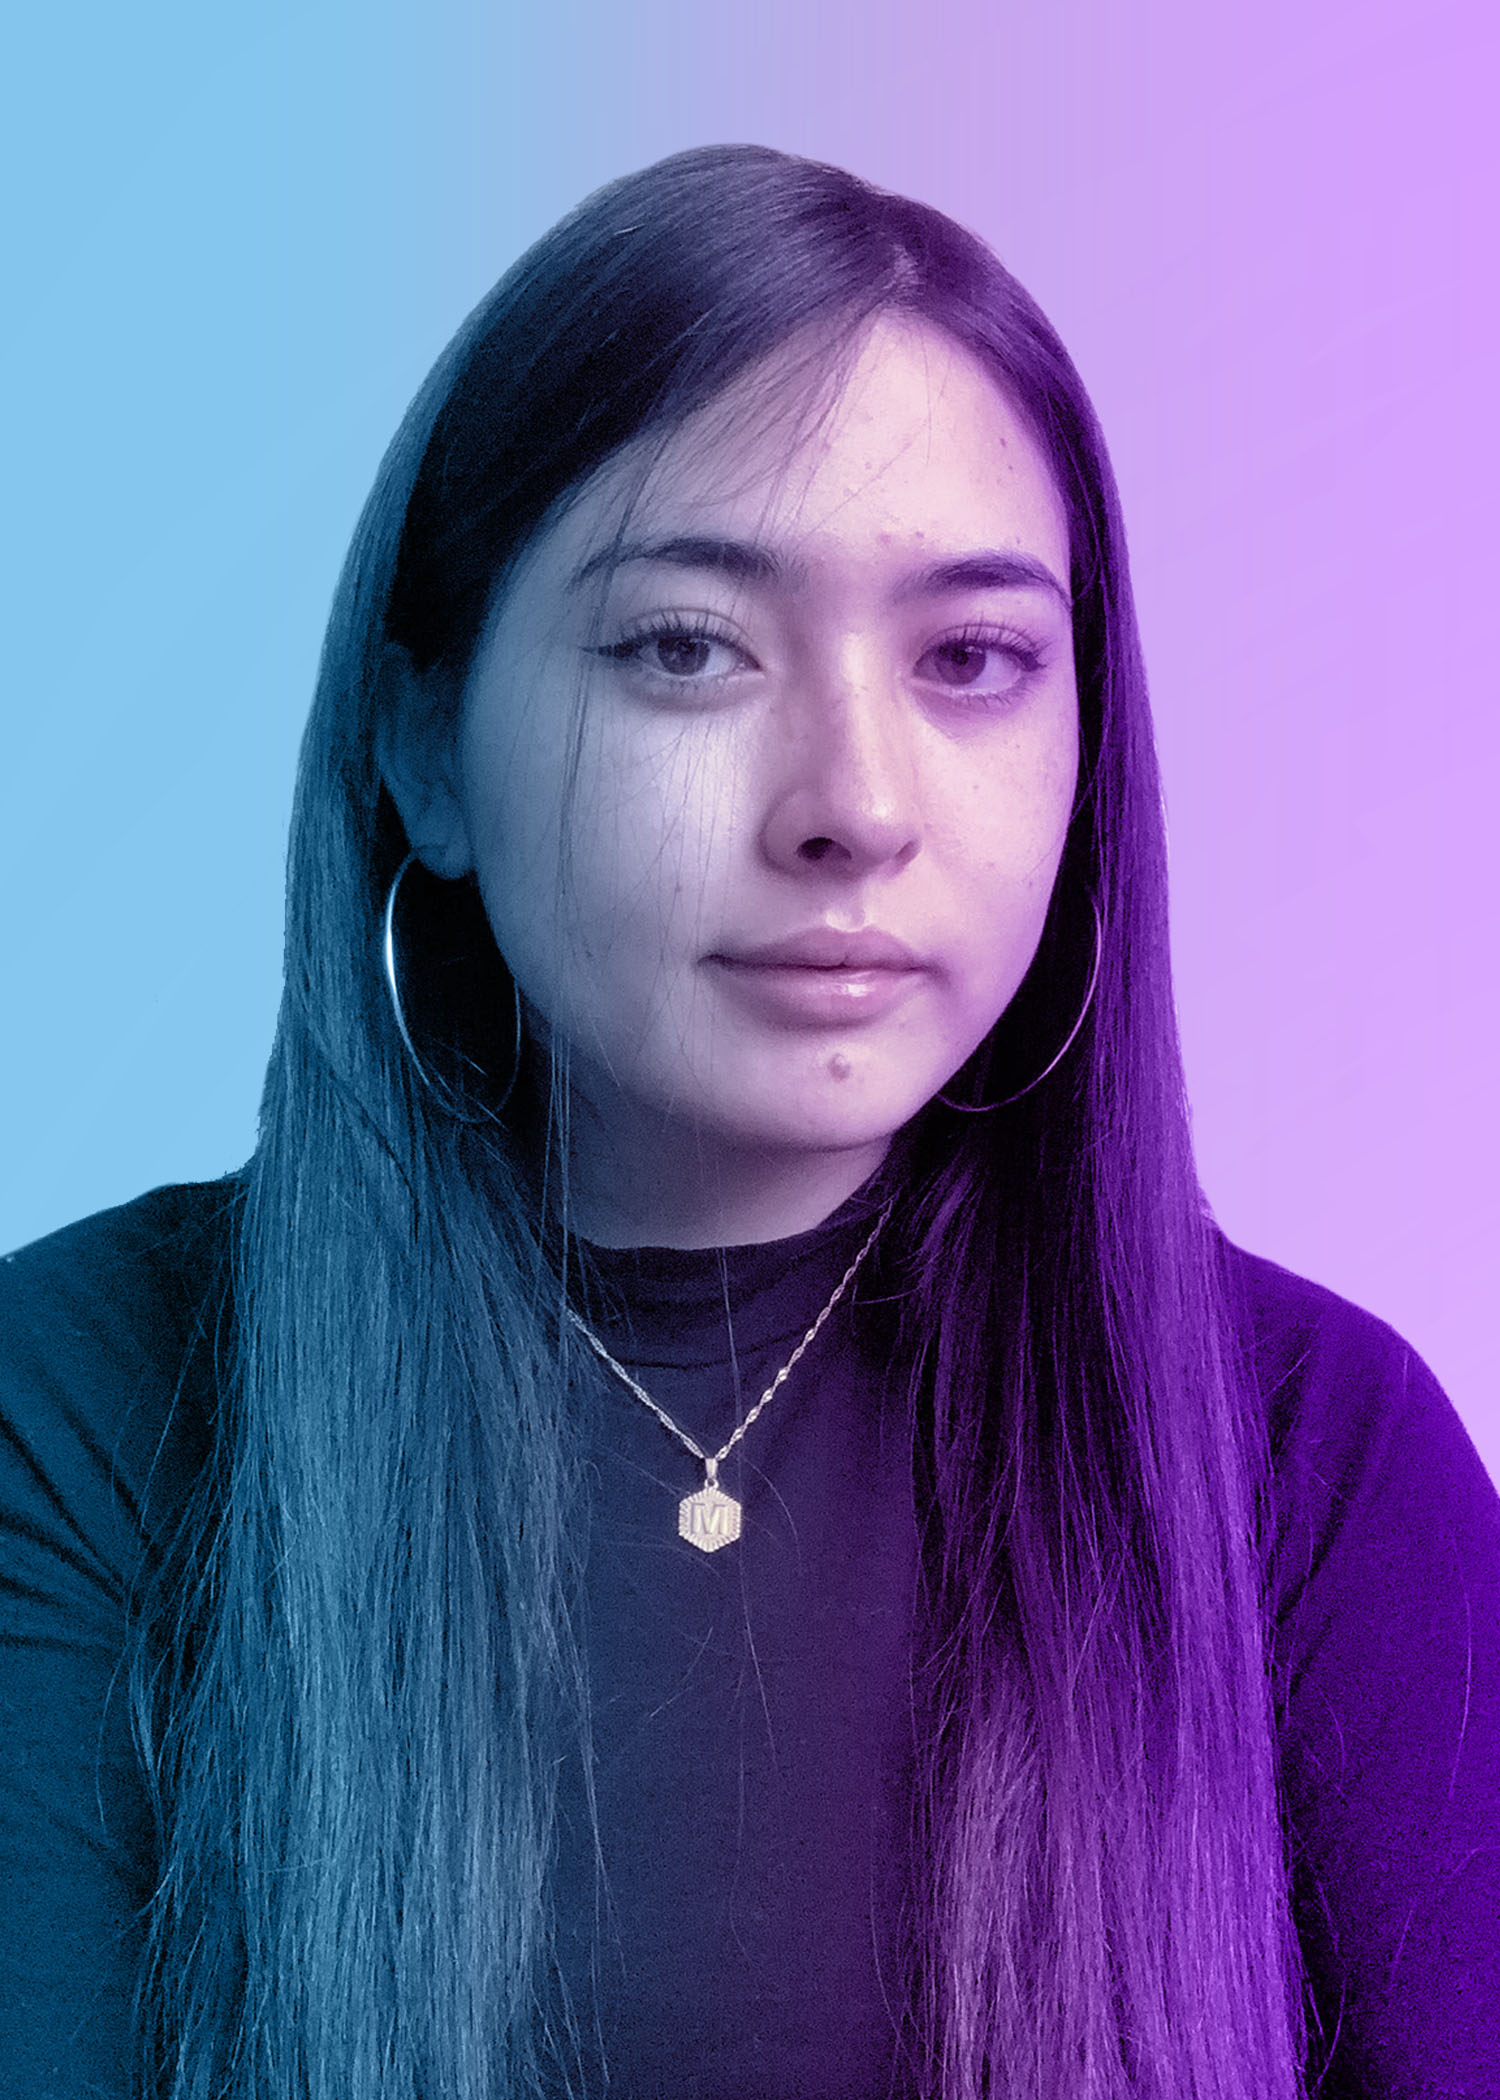 photo of female college student with long dark hair. blue and purple overlay on photo.